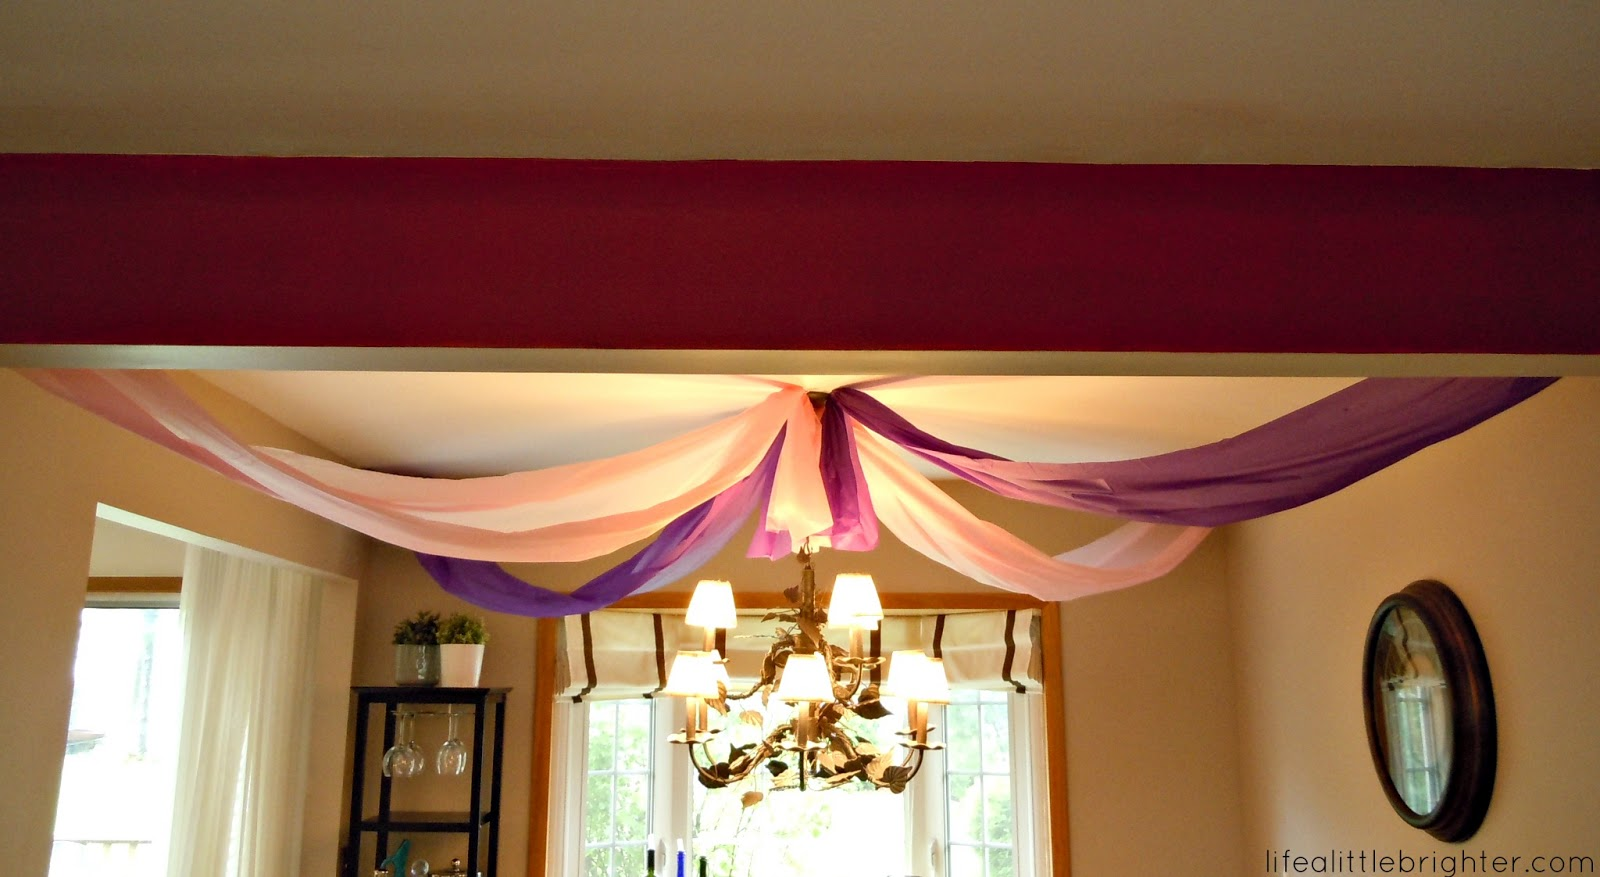 Birthday party diy decorations life a little brighter for Ceiling decoration ideas